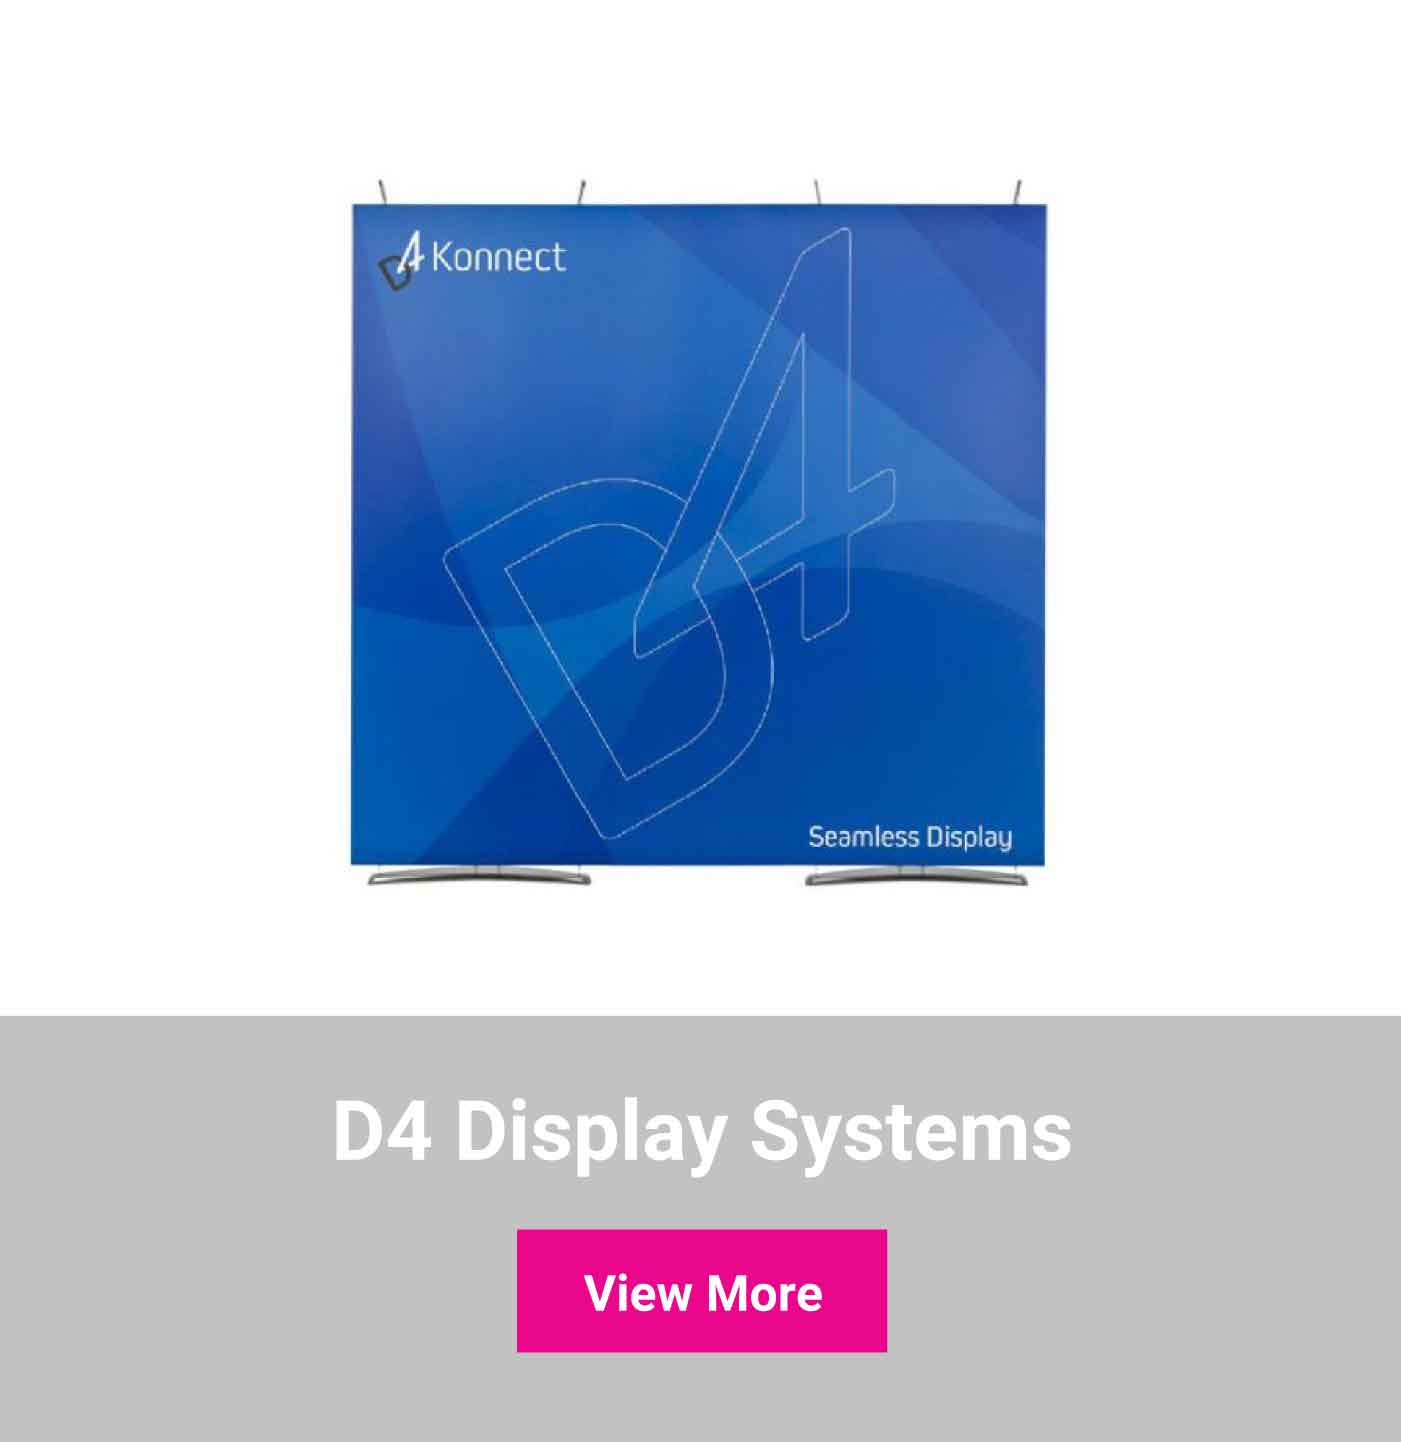 Shop D4 display systems